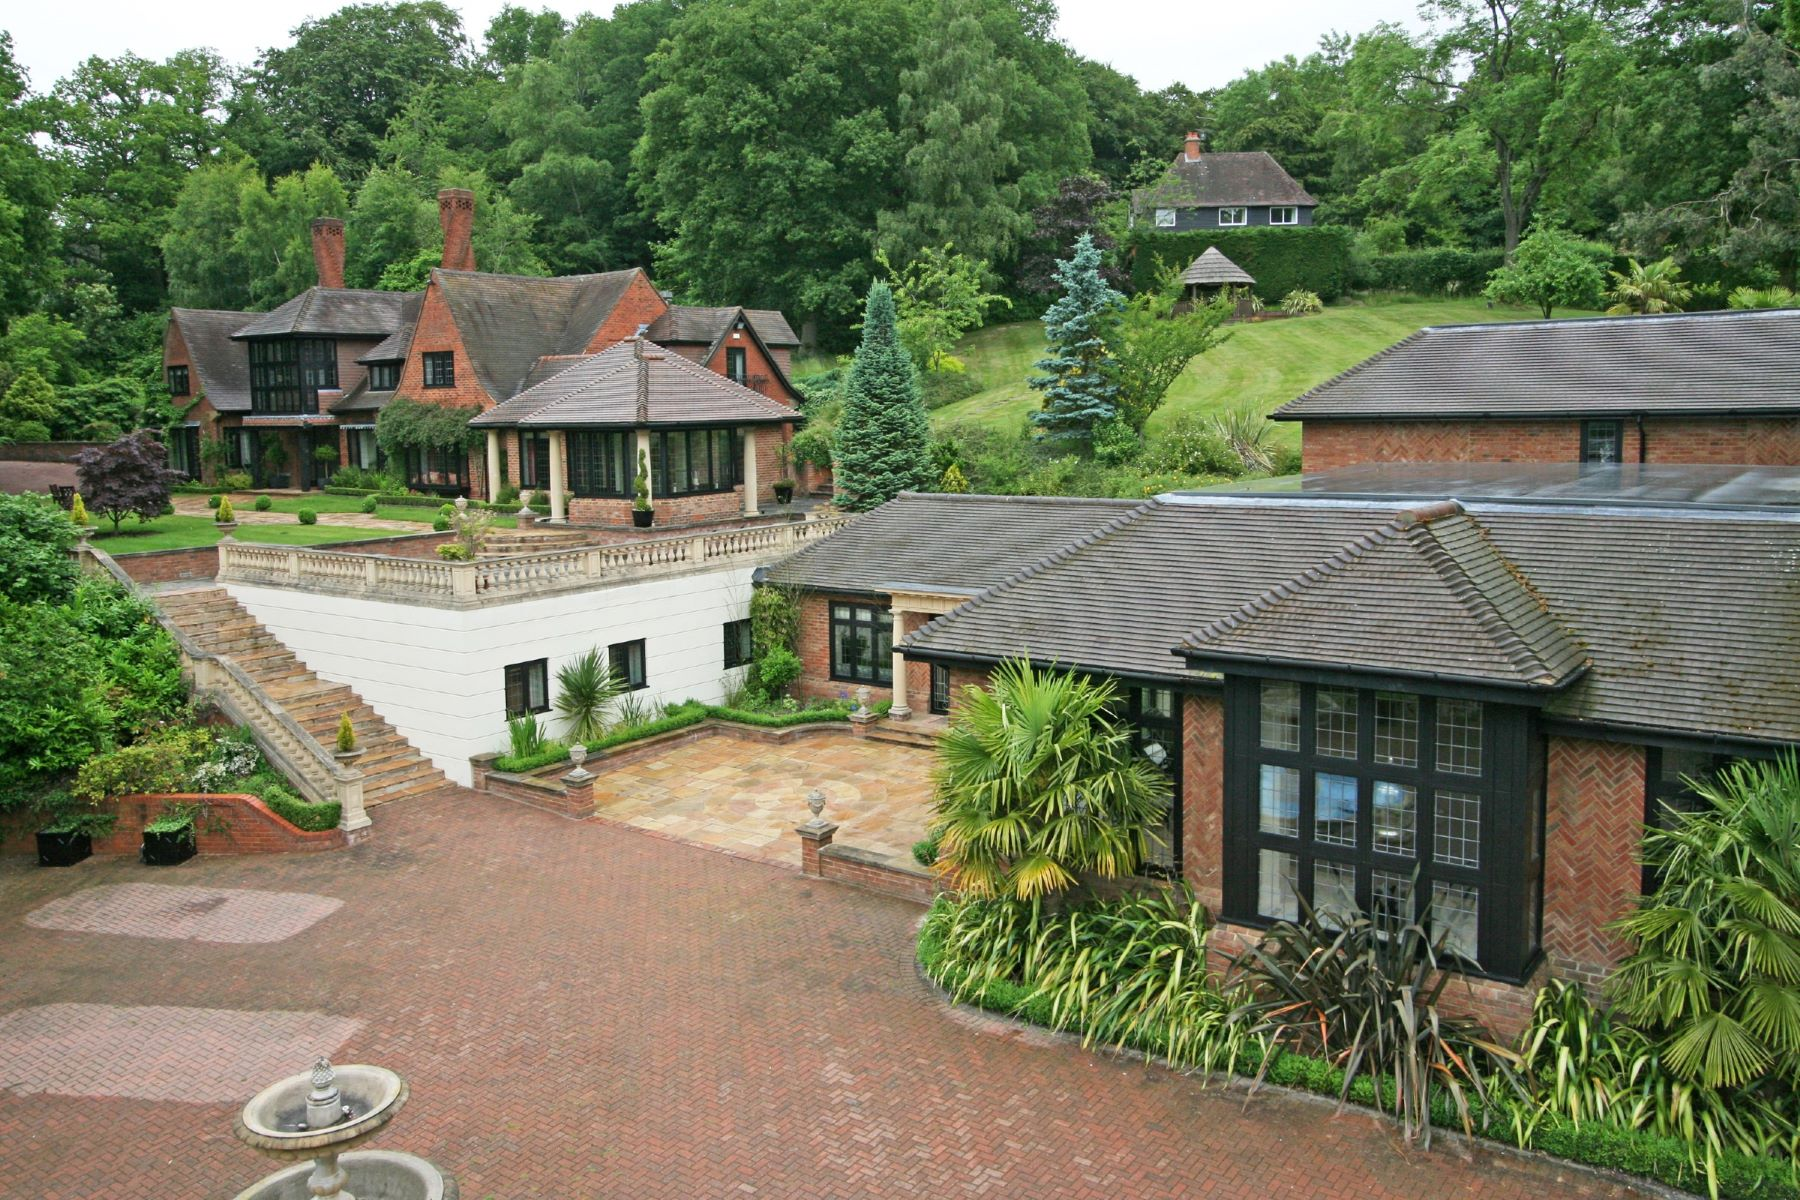 Single Family Homes for Sale at Bowsey Manor, Wargrave Bowsey Manor Bowsey Hill Other England, England RG10 8QJ United Kingdom